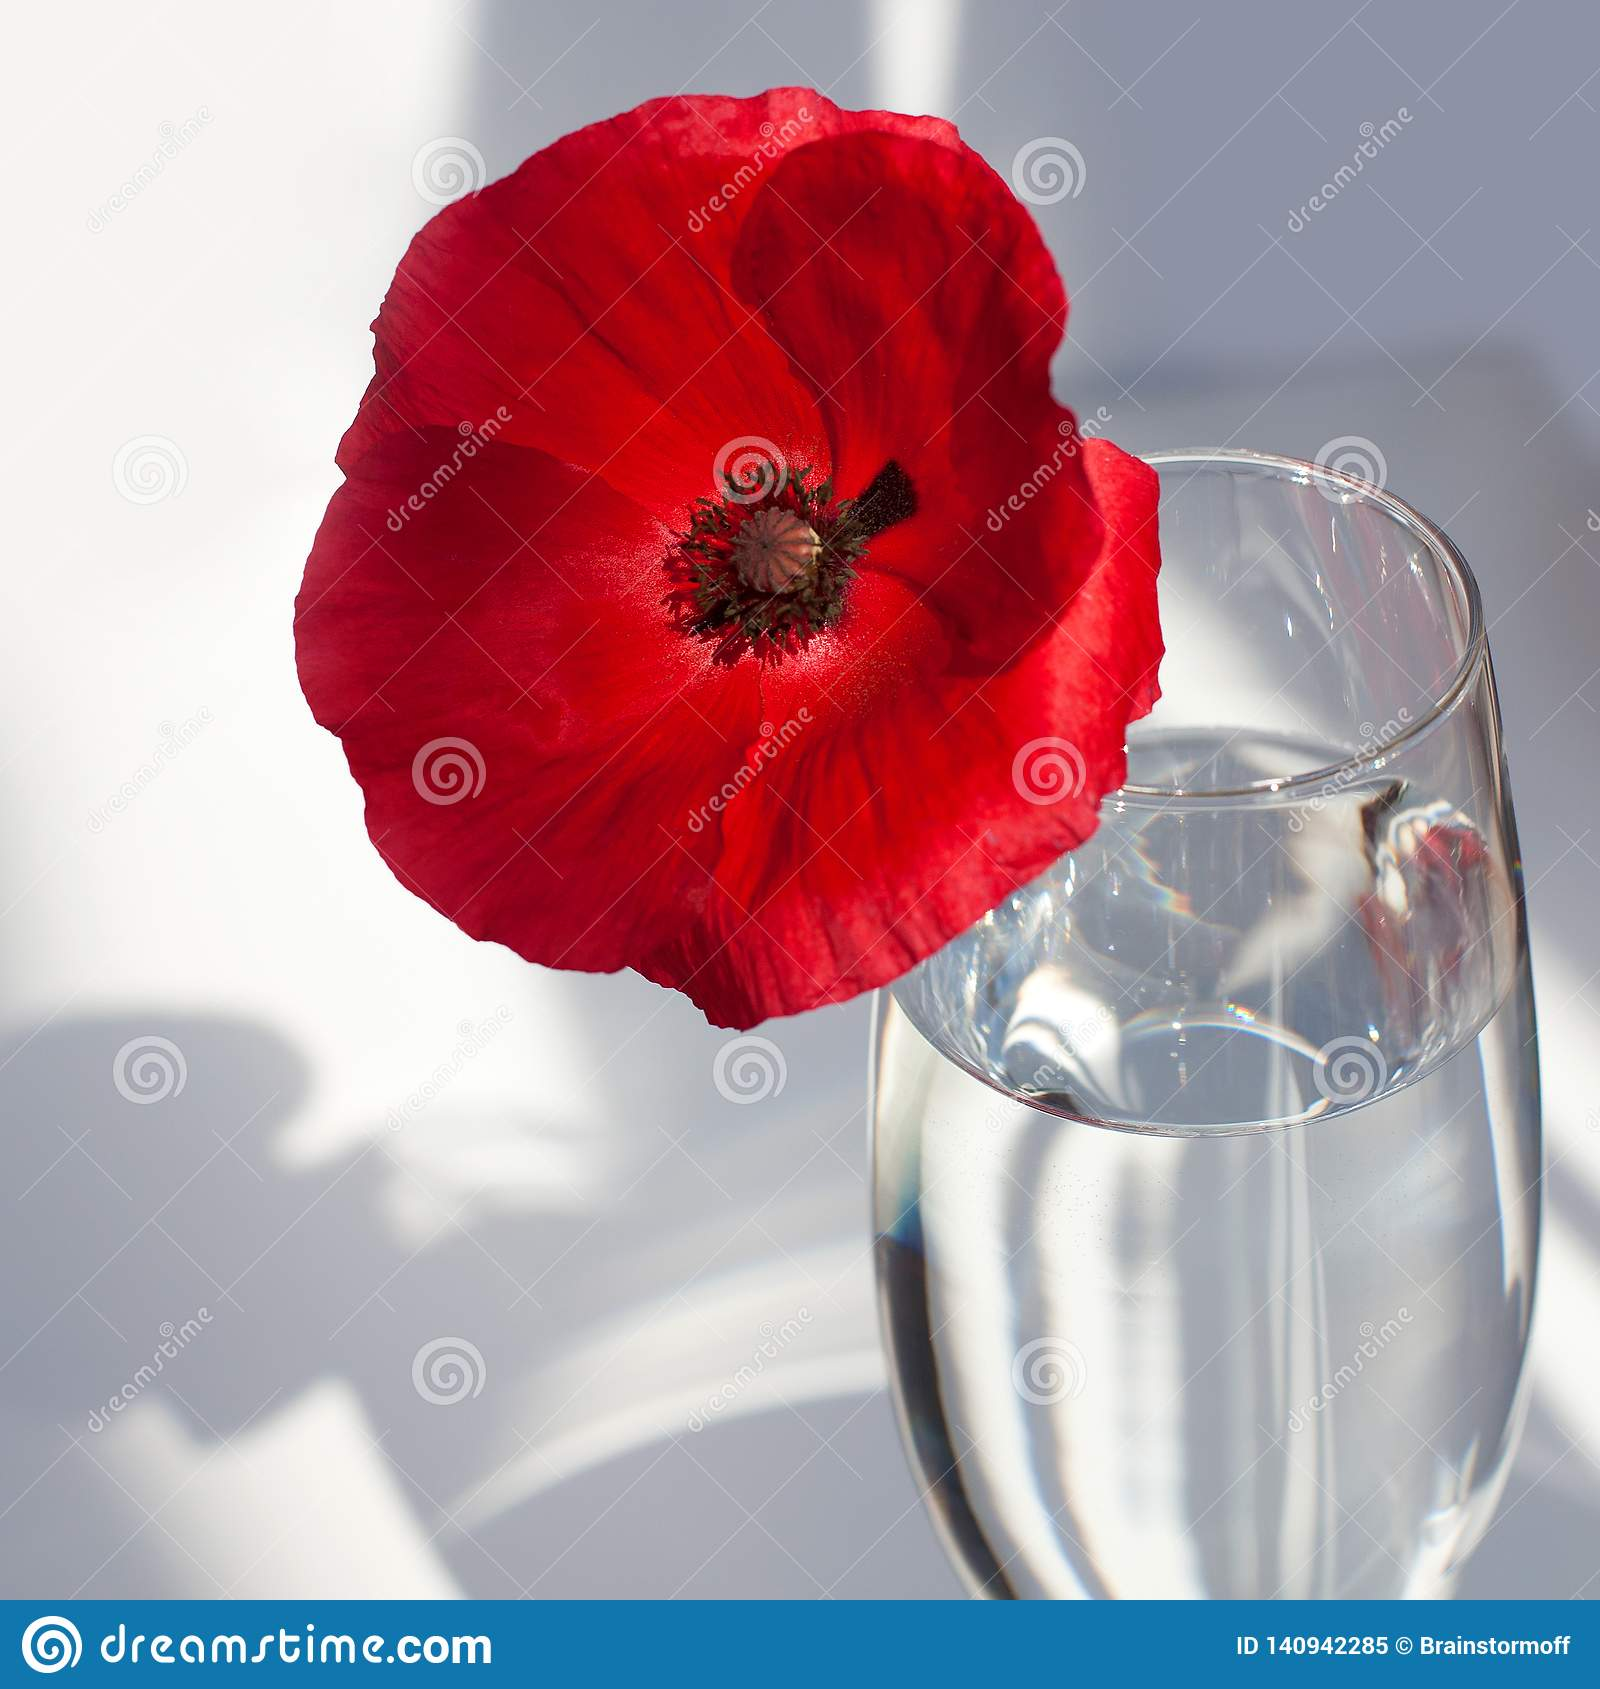 One big red poppy flower on white table with contrast sun light and shadows and wine glass with water closeup top view